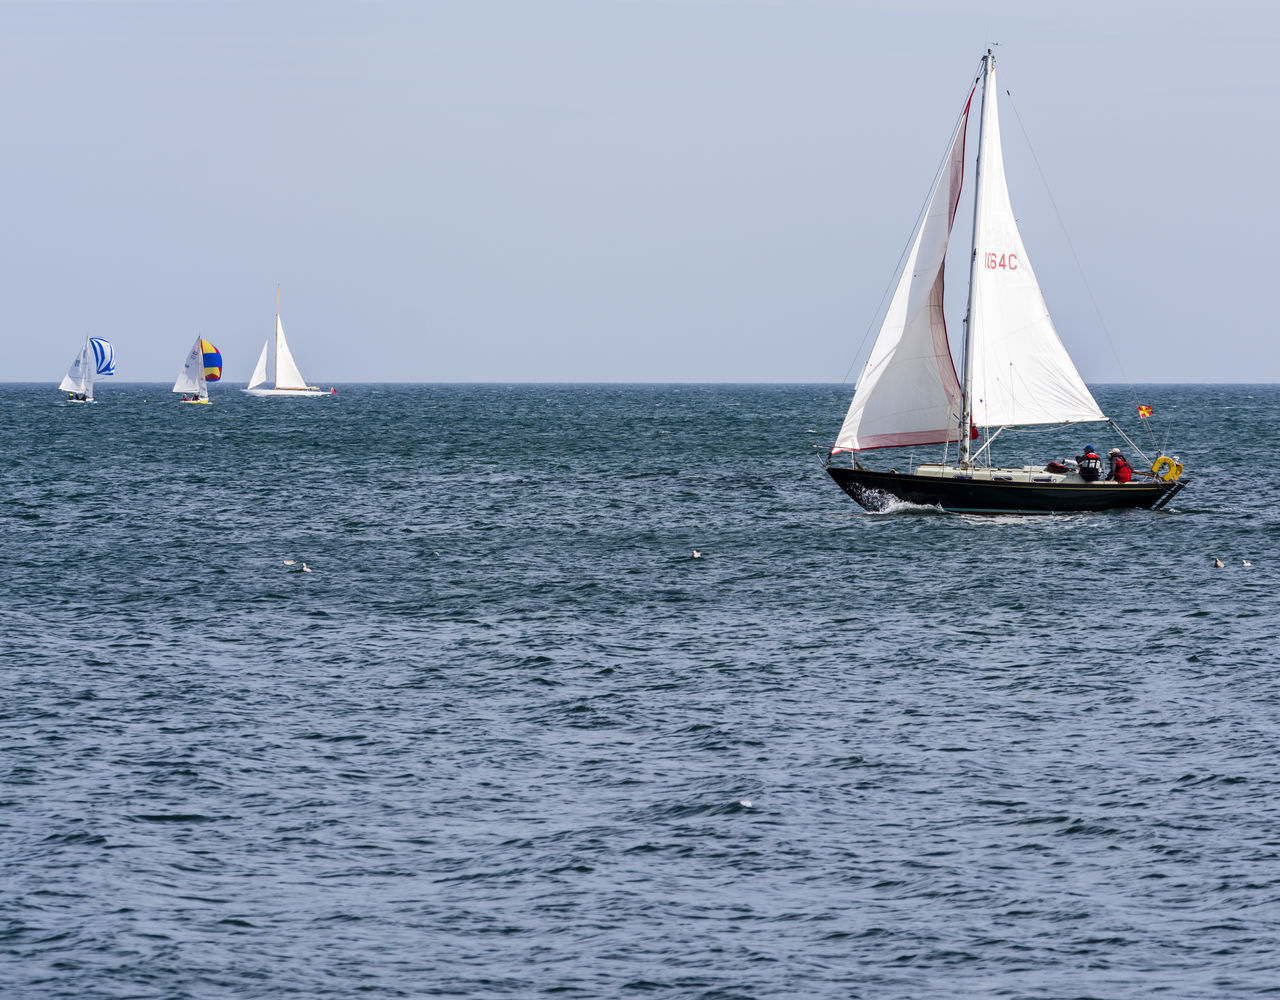 Beautiful stock photos of leinwand, sea, water, nautical vessel, mode of transport